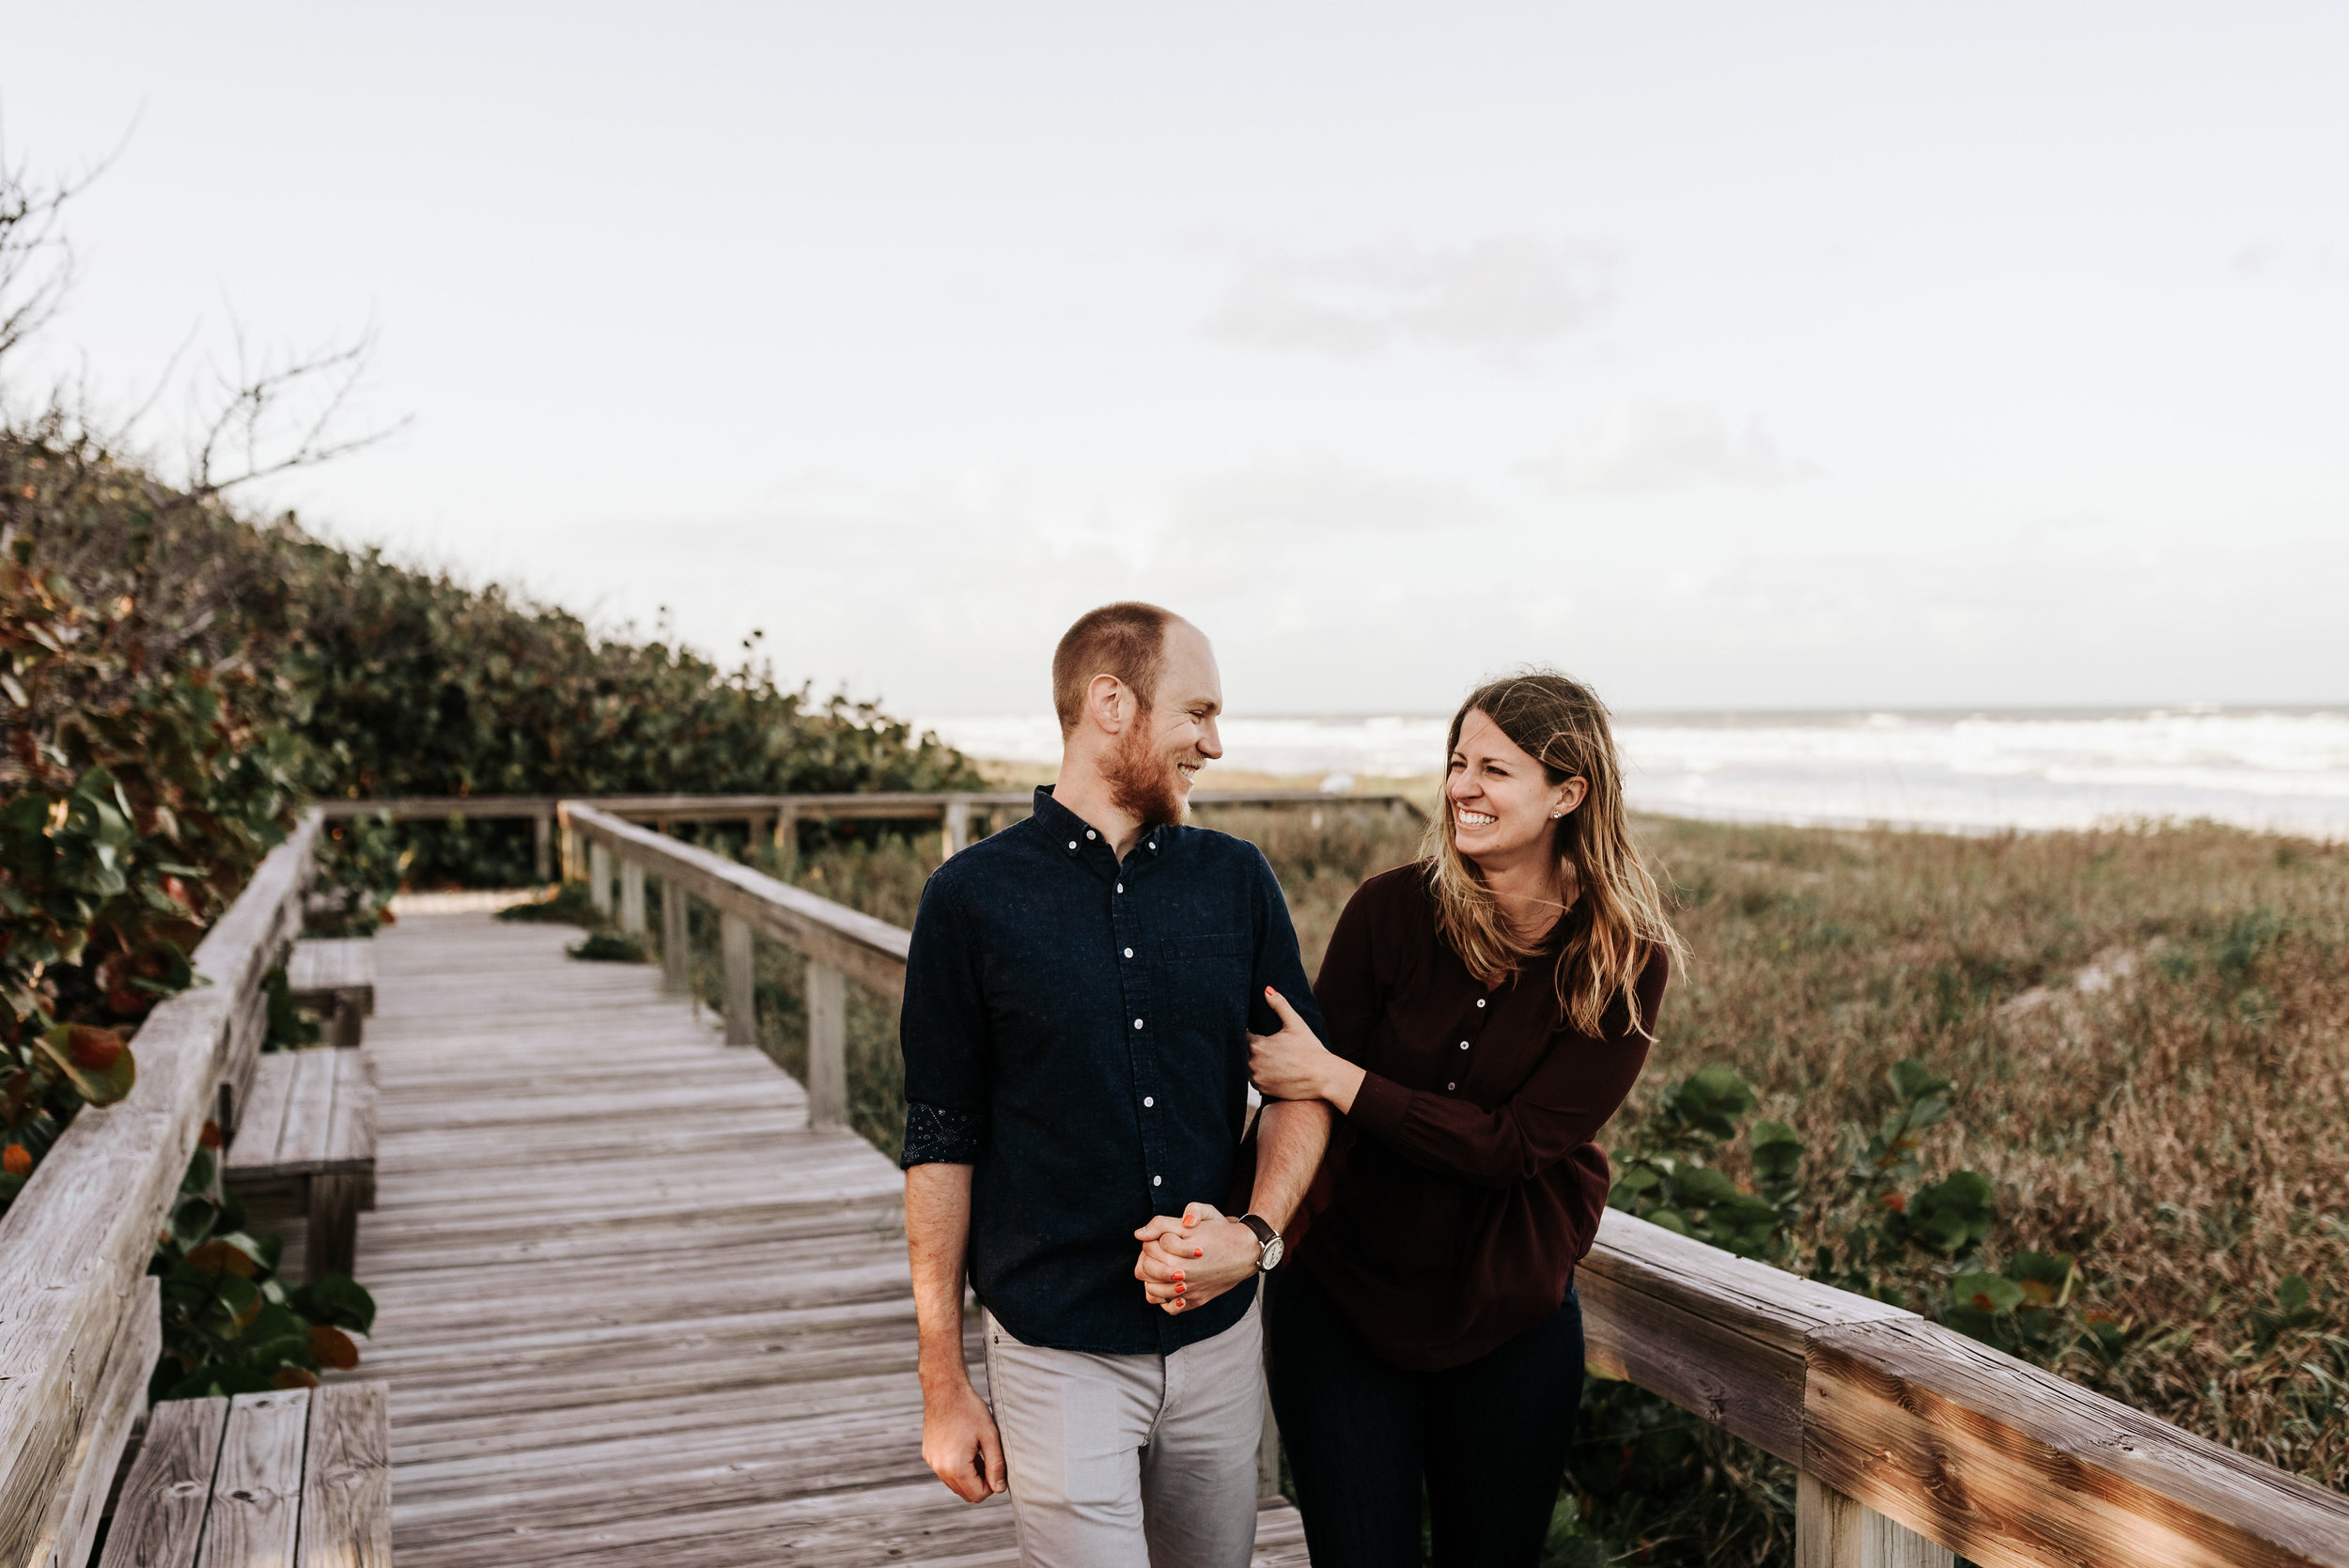 Courtney_Luke_Wedding_Engagement_Session_Cocoa_Beach_Florida_Photography_by_V_4565.jpg